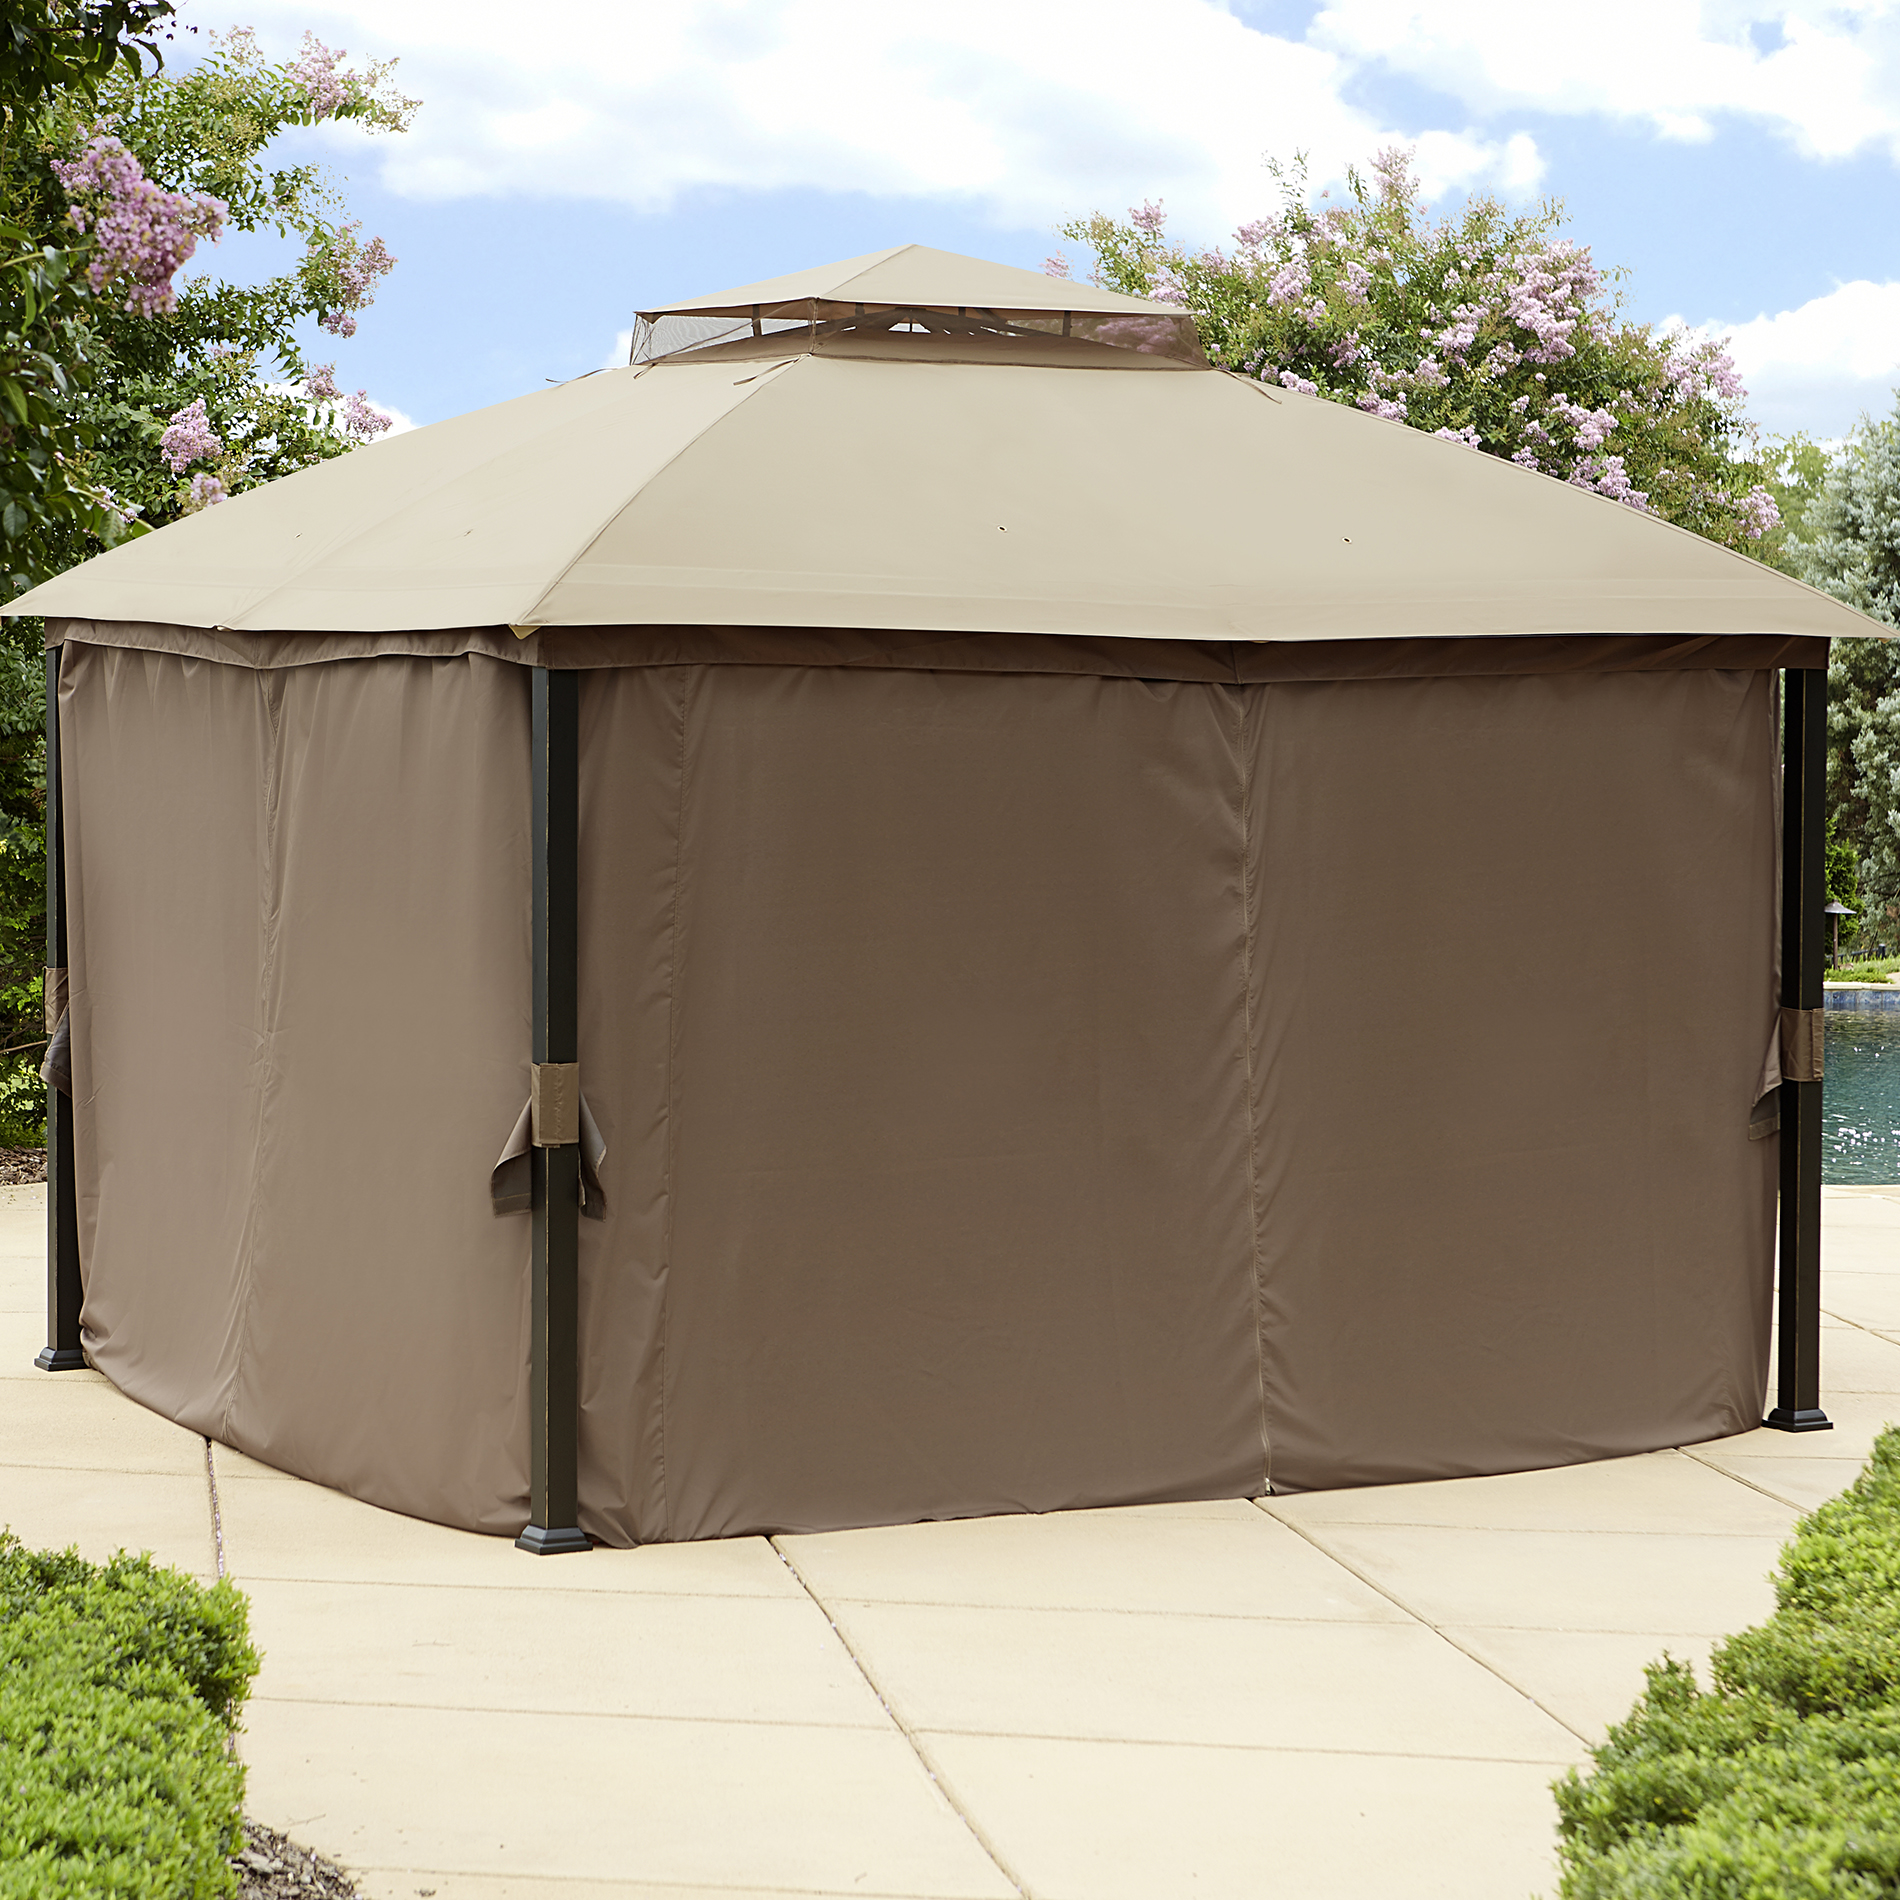 Garden Oasis Replacement Canopy Privacy Gazebo